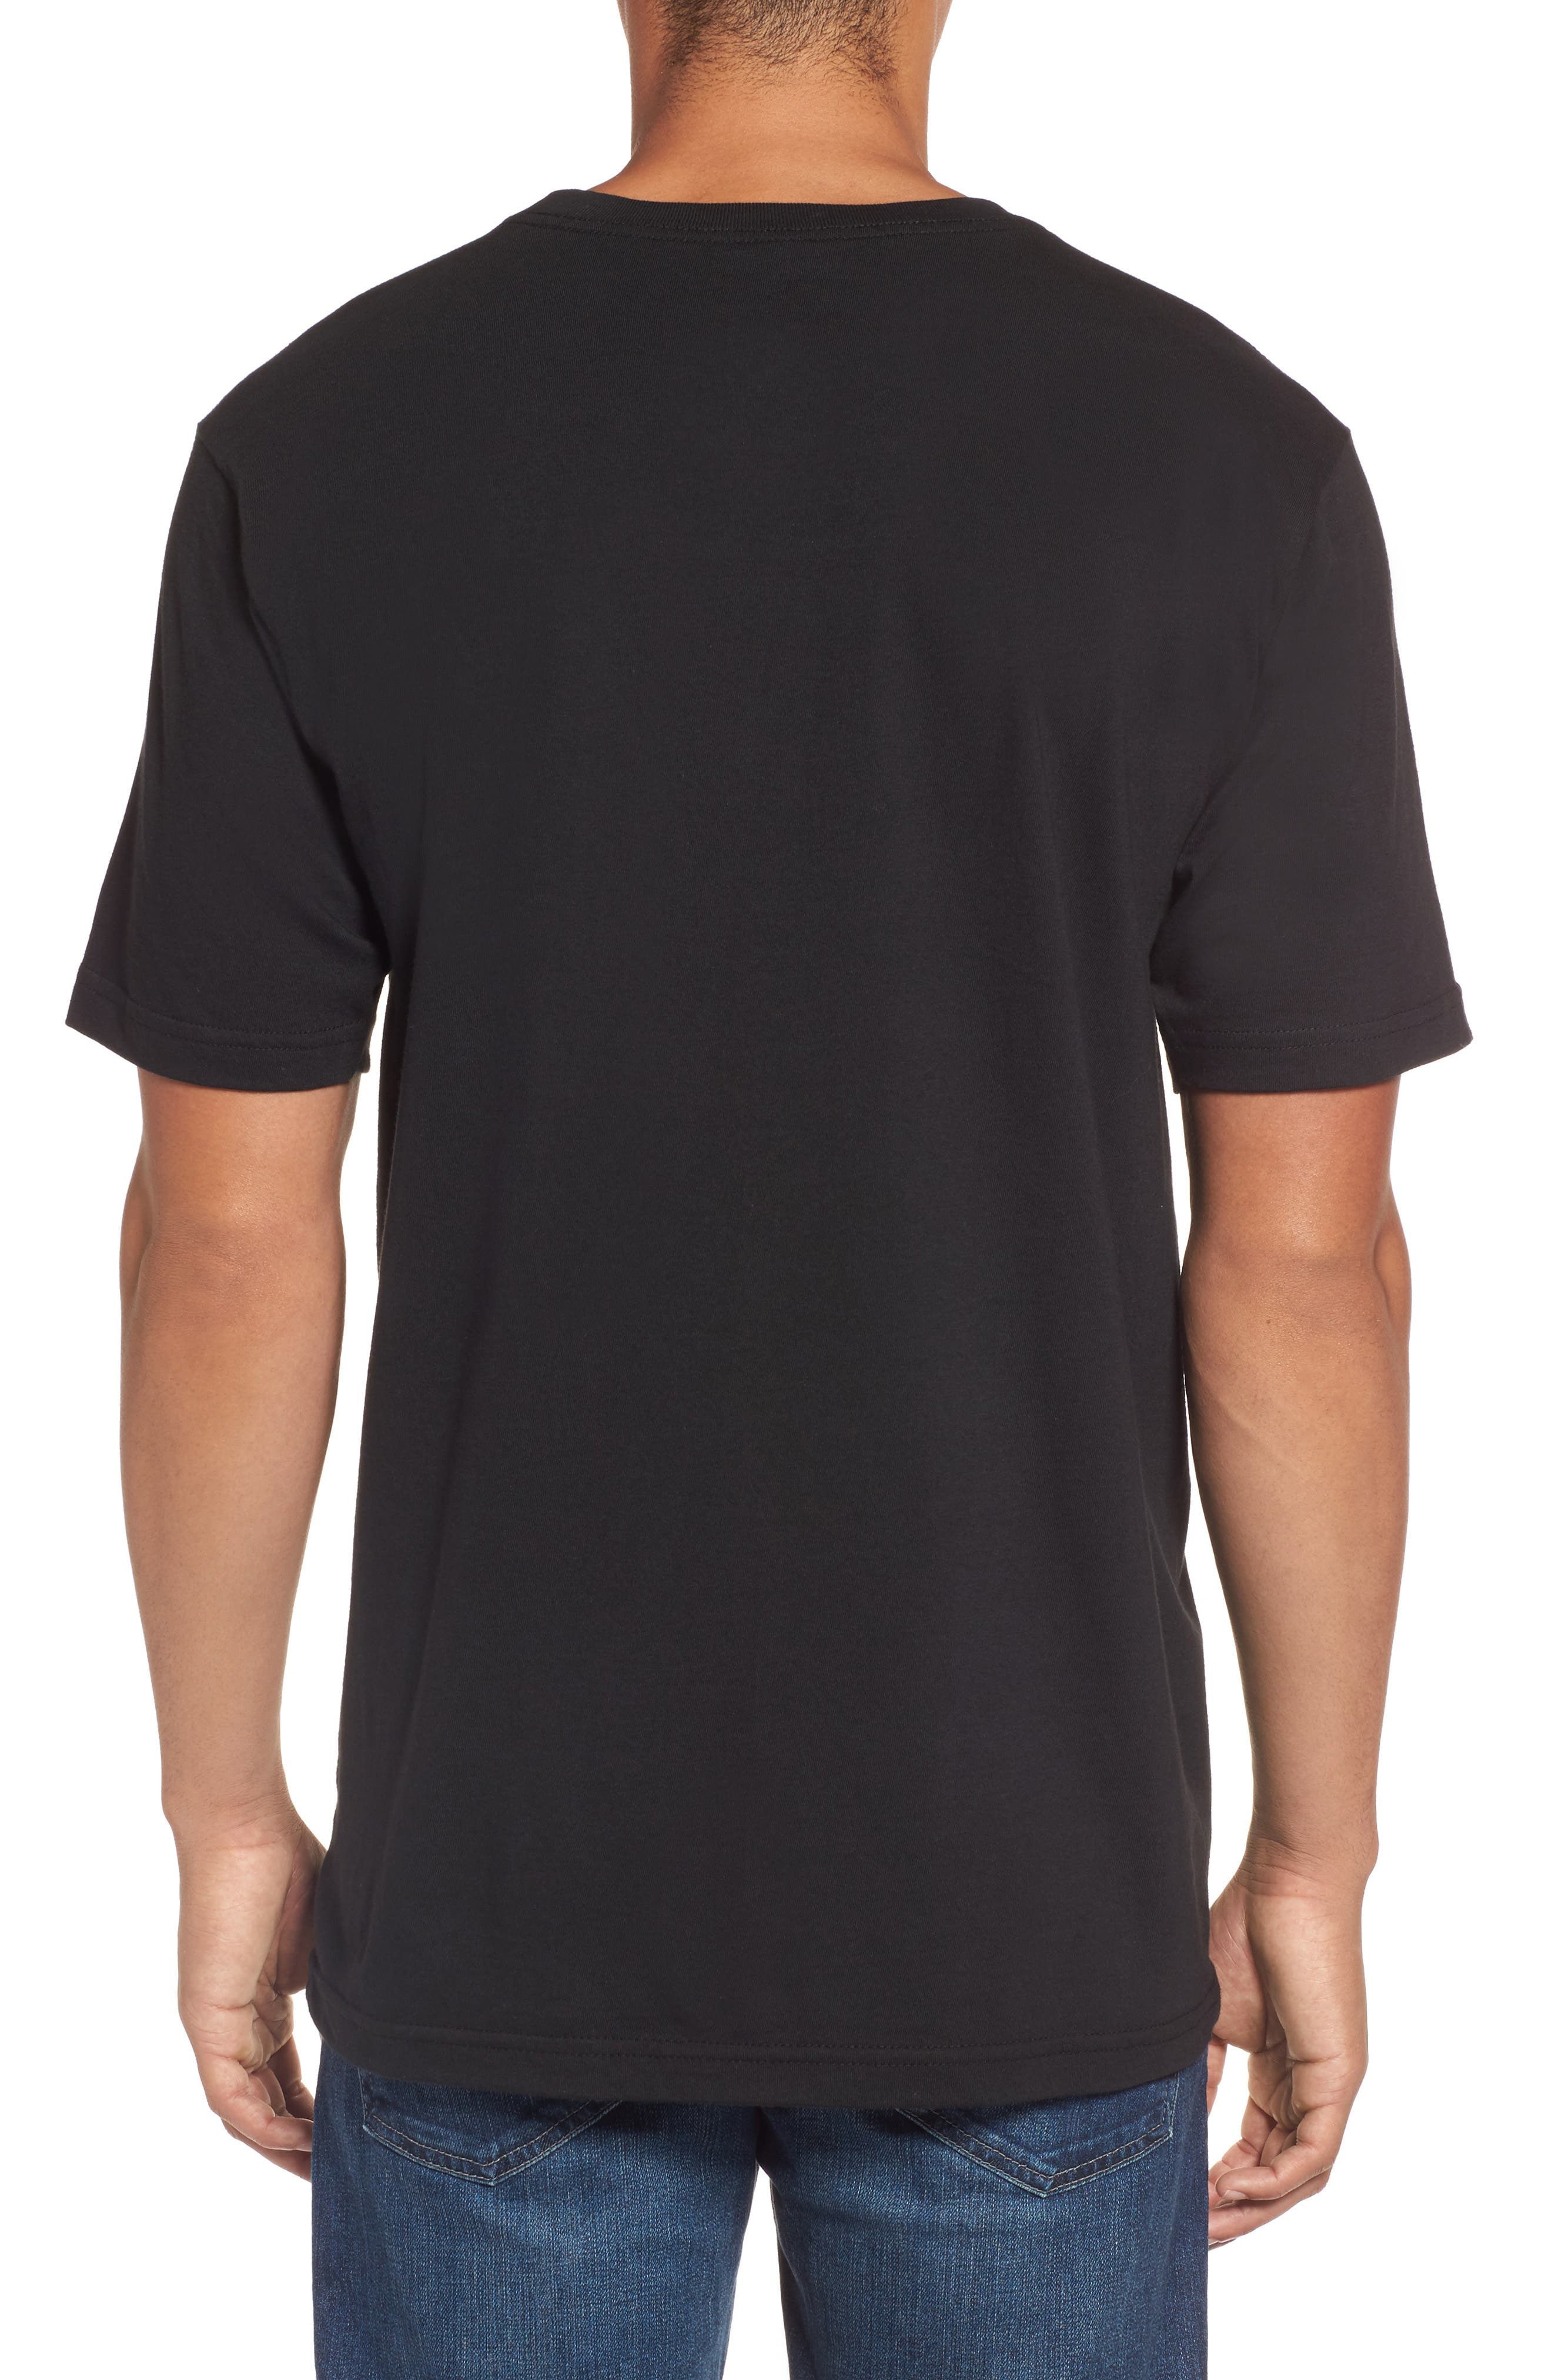 Alternate Image 2  - Rip Curl Cage Classic Graphic T-Shirt